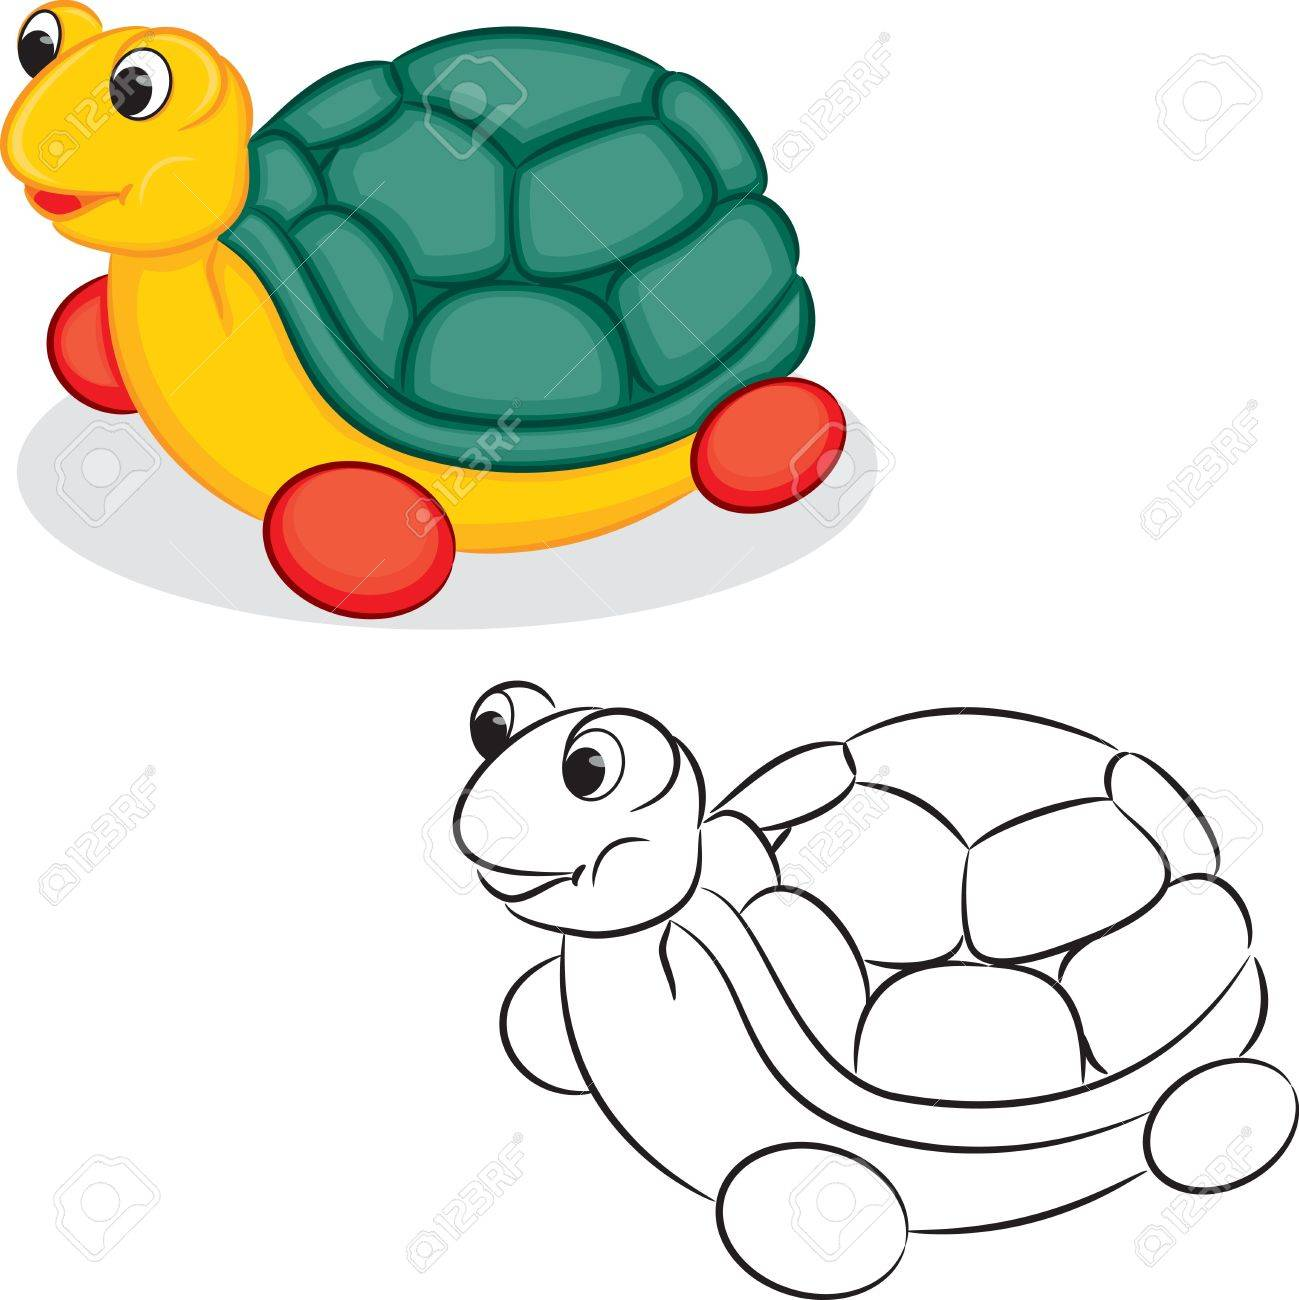 turtle toy coloring book vector illustration royalty free cliparts